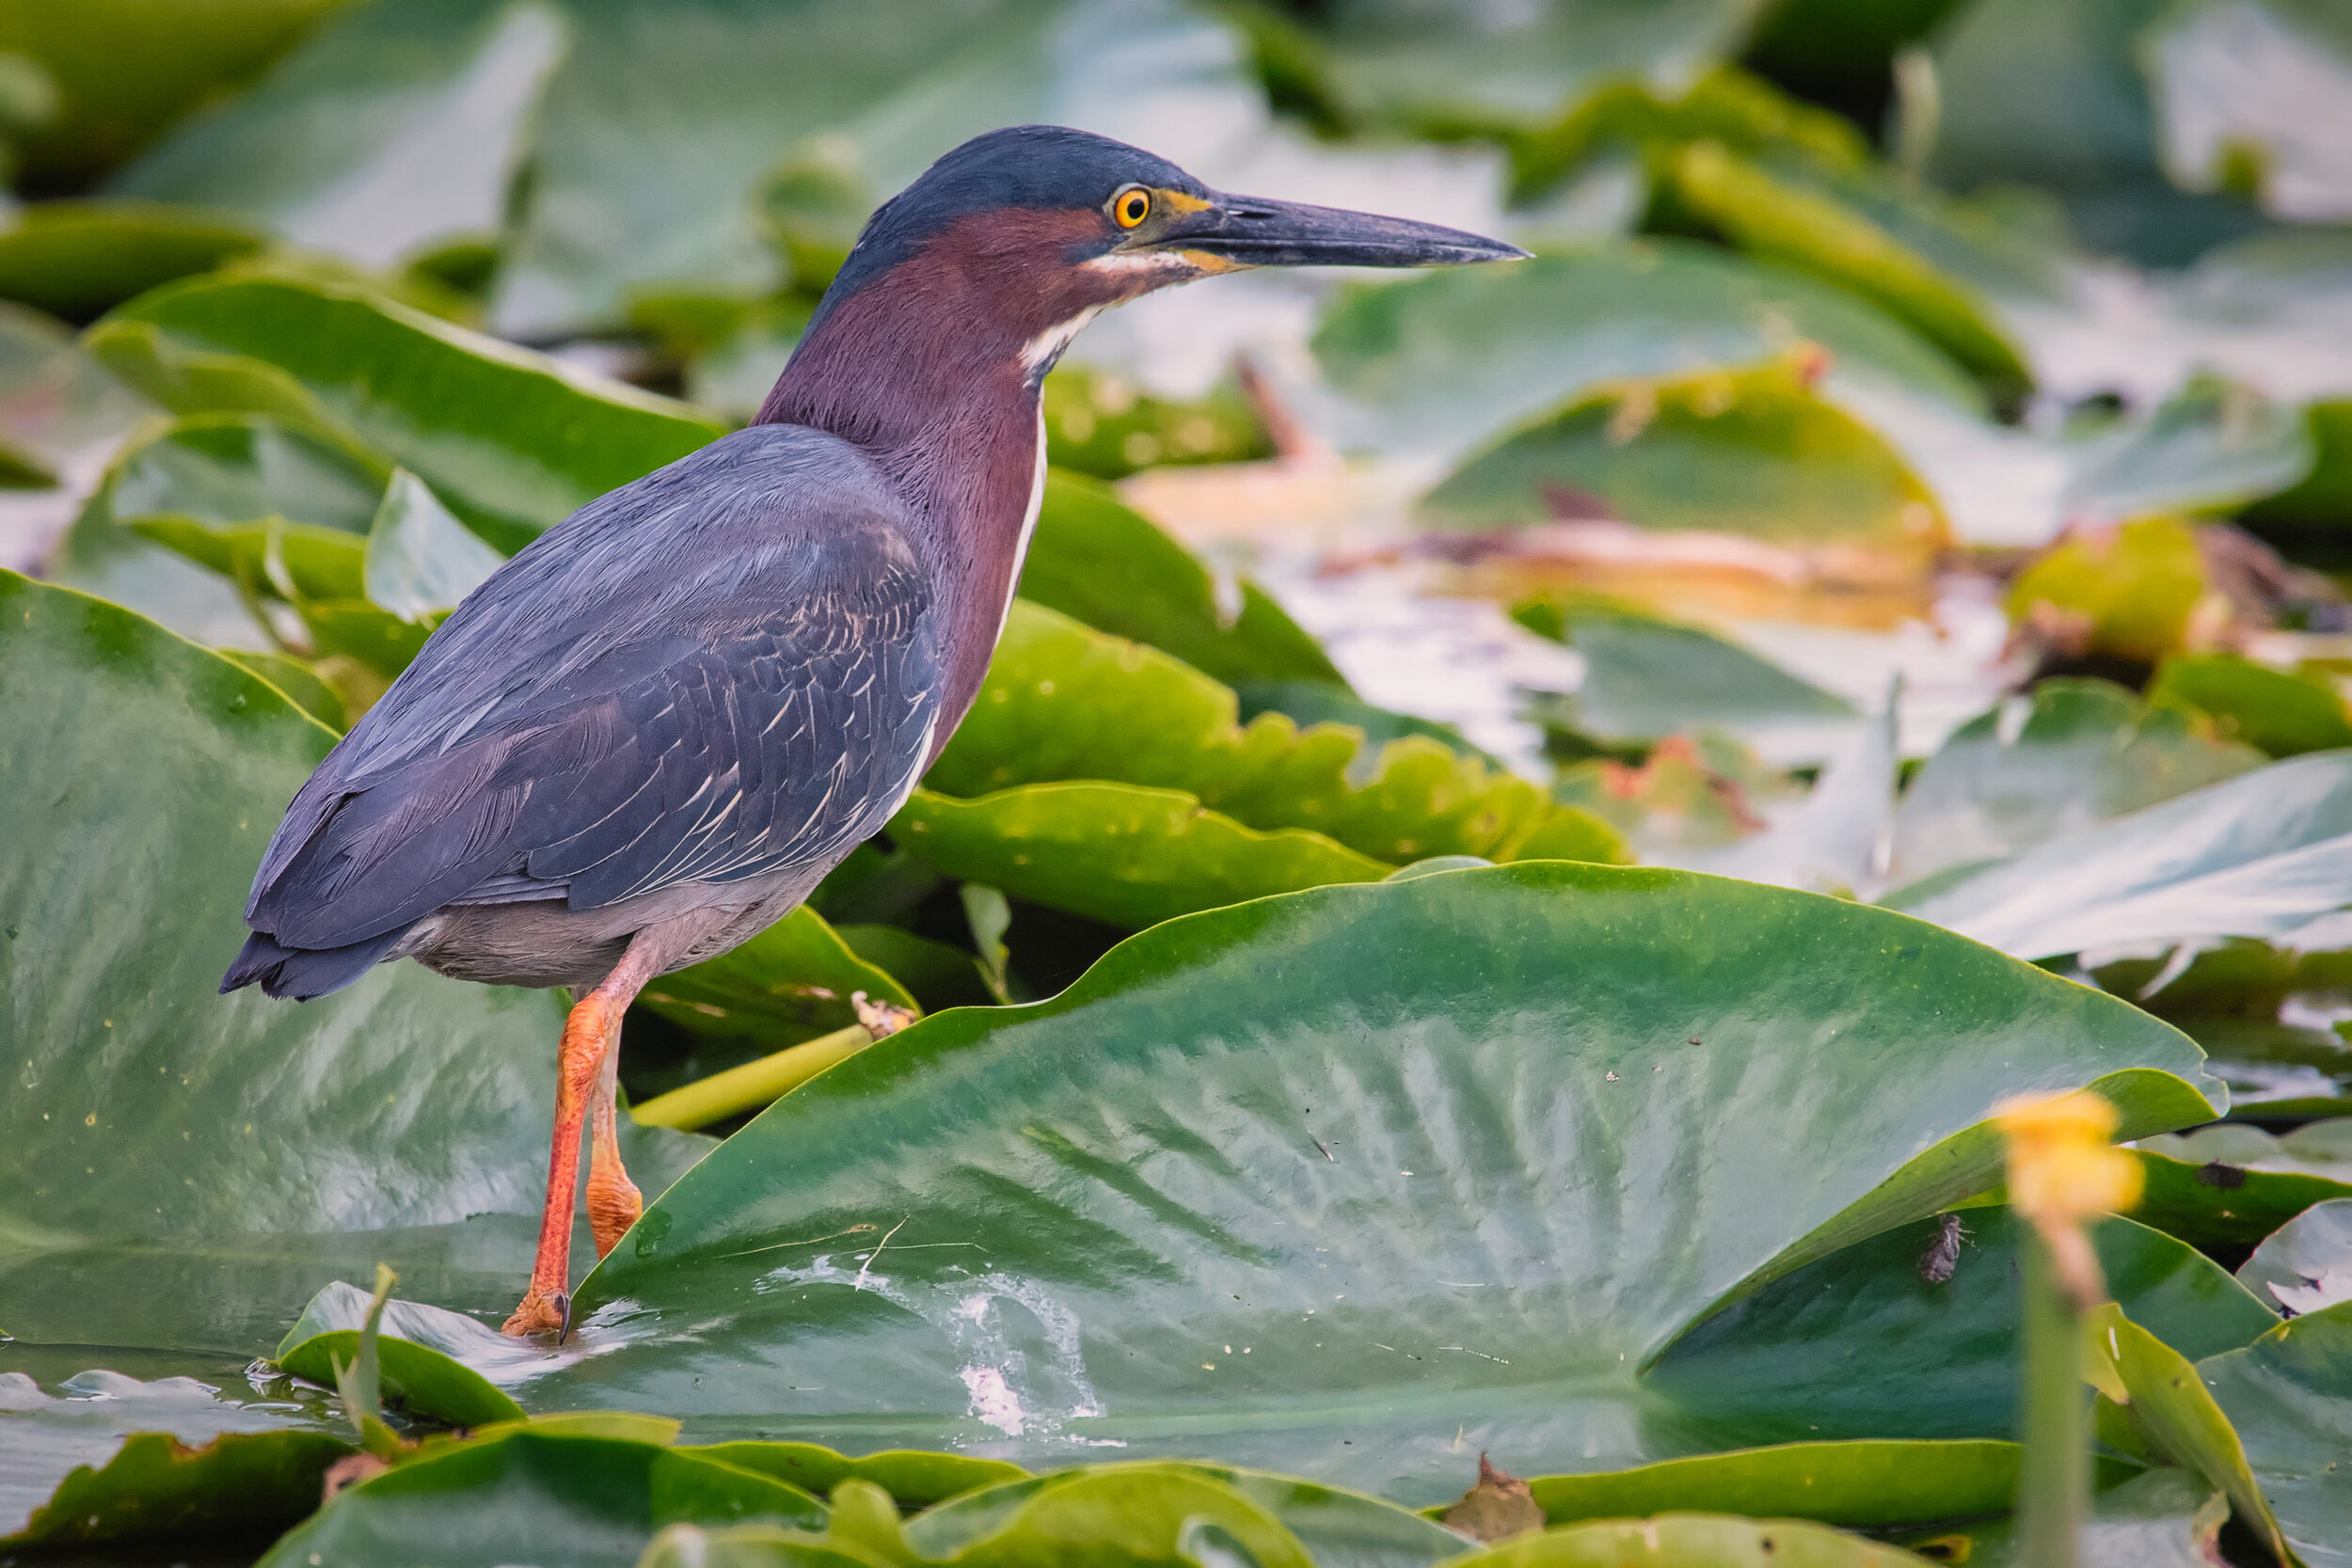 Little Green Heron on Lilly Pads